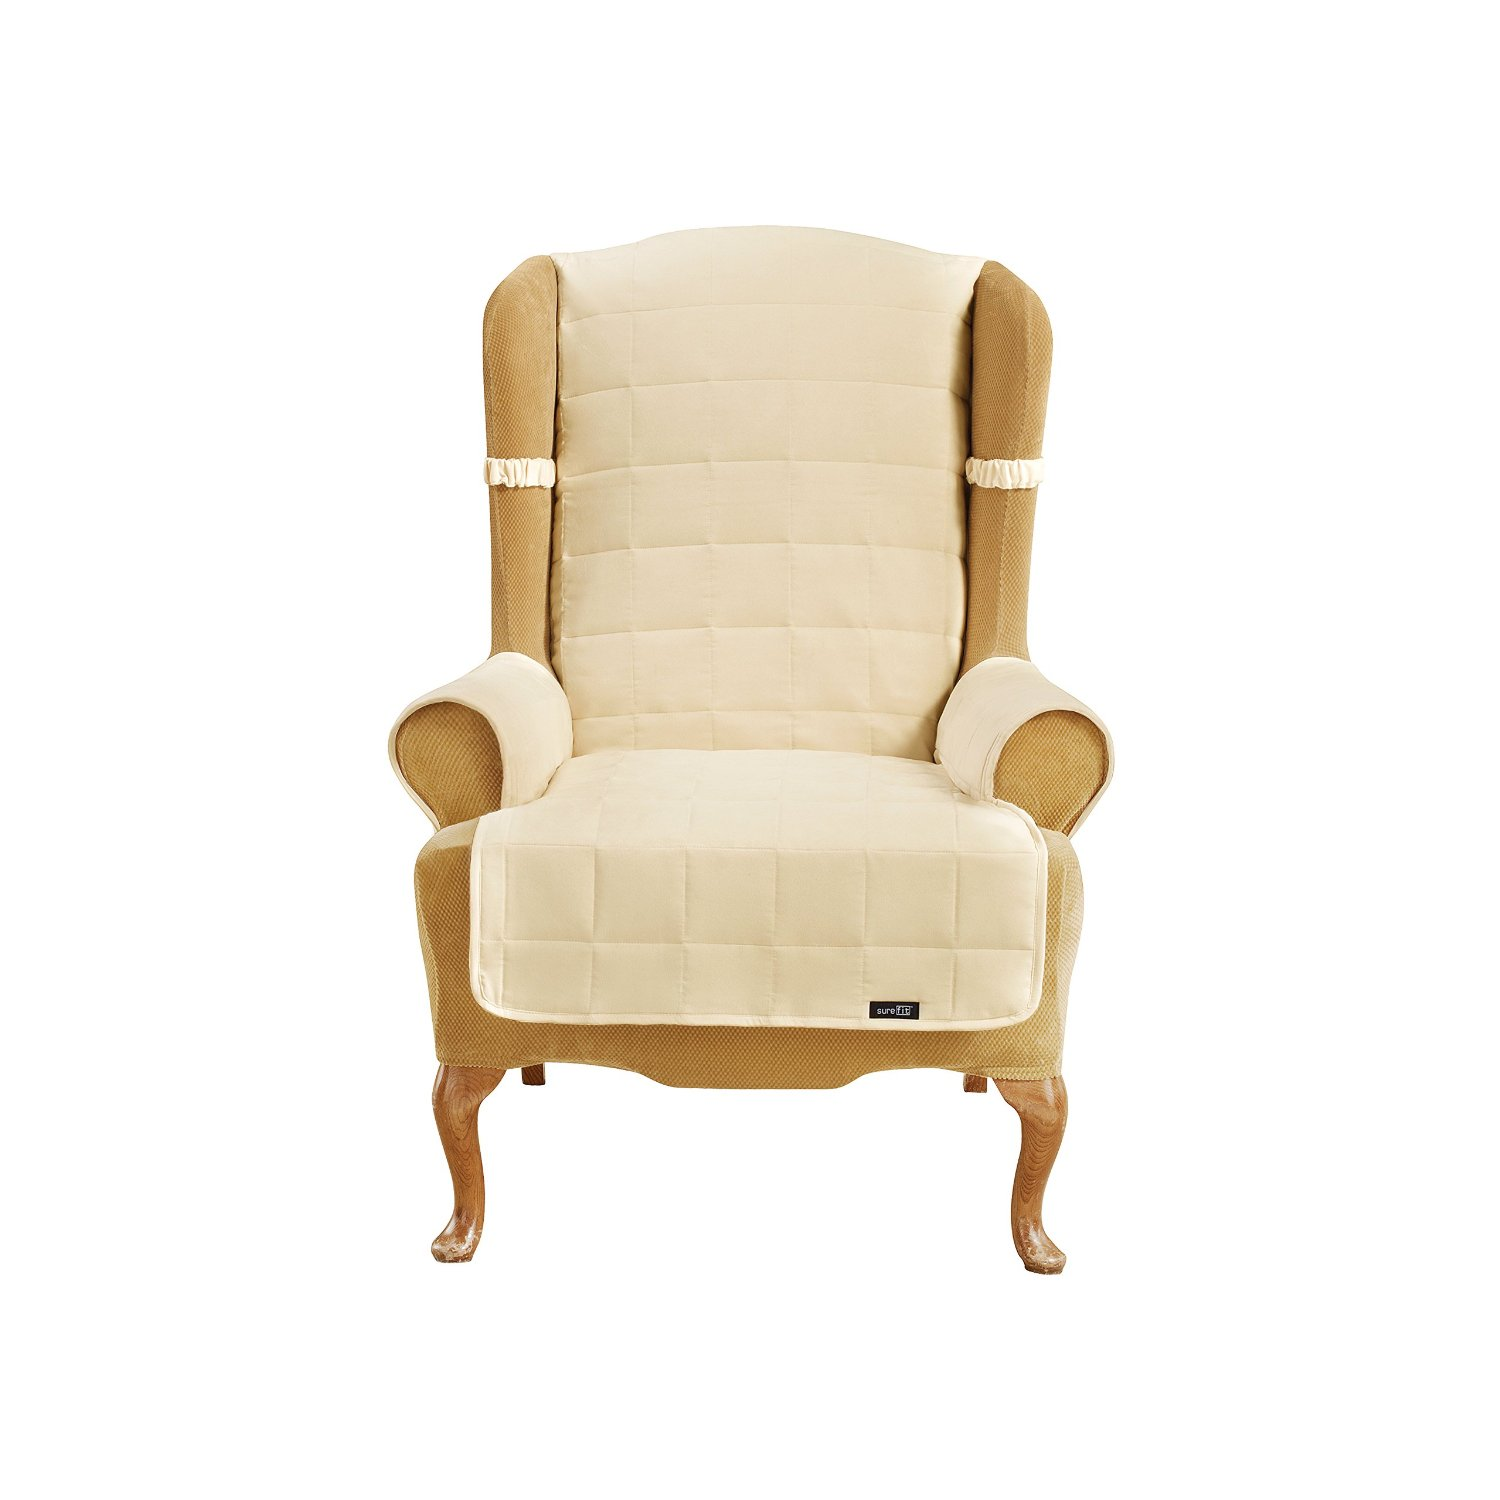 Image of: Top Wing Chair Recliner